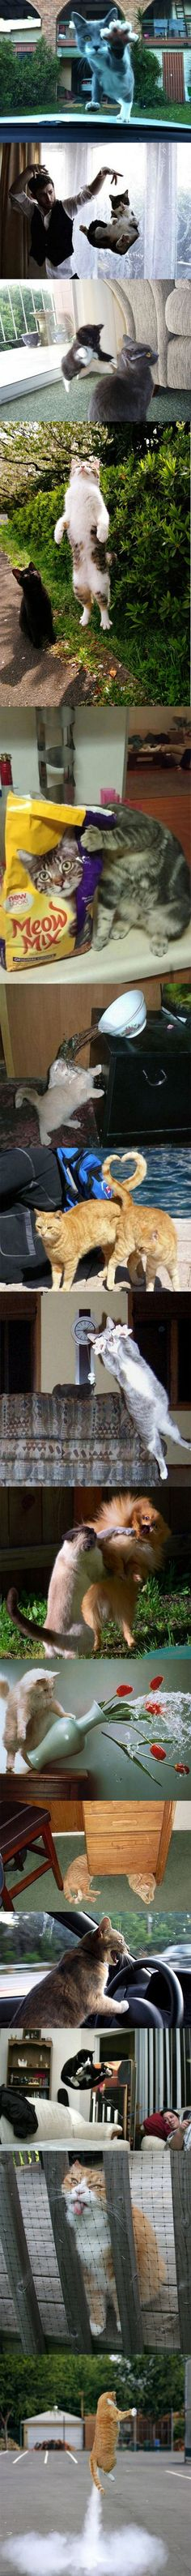 Kitty pictures that were timed perfectly